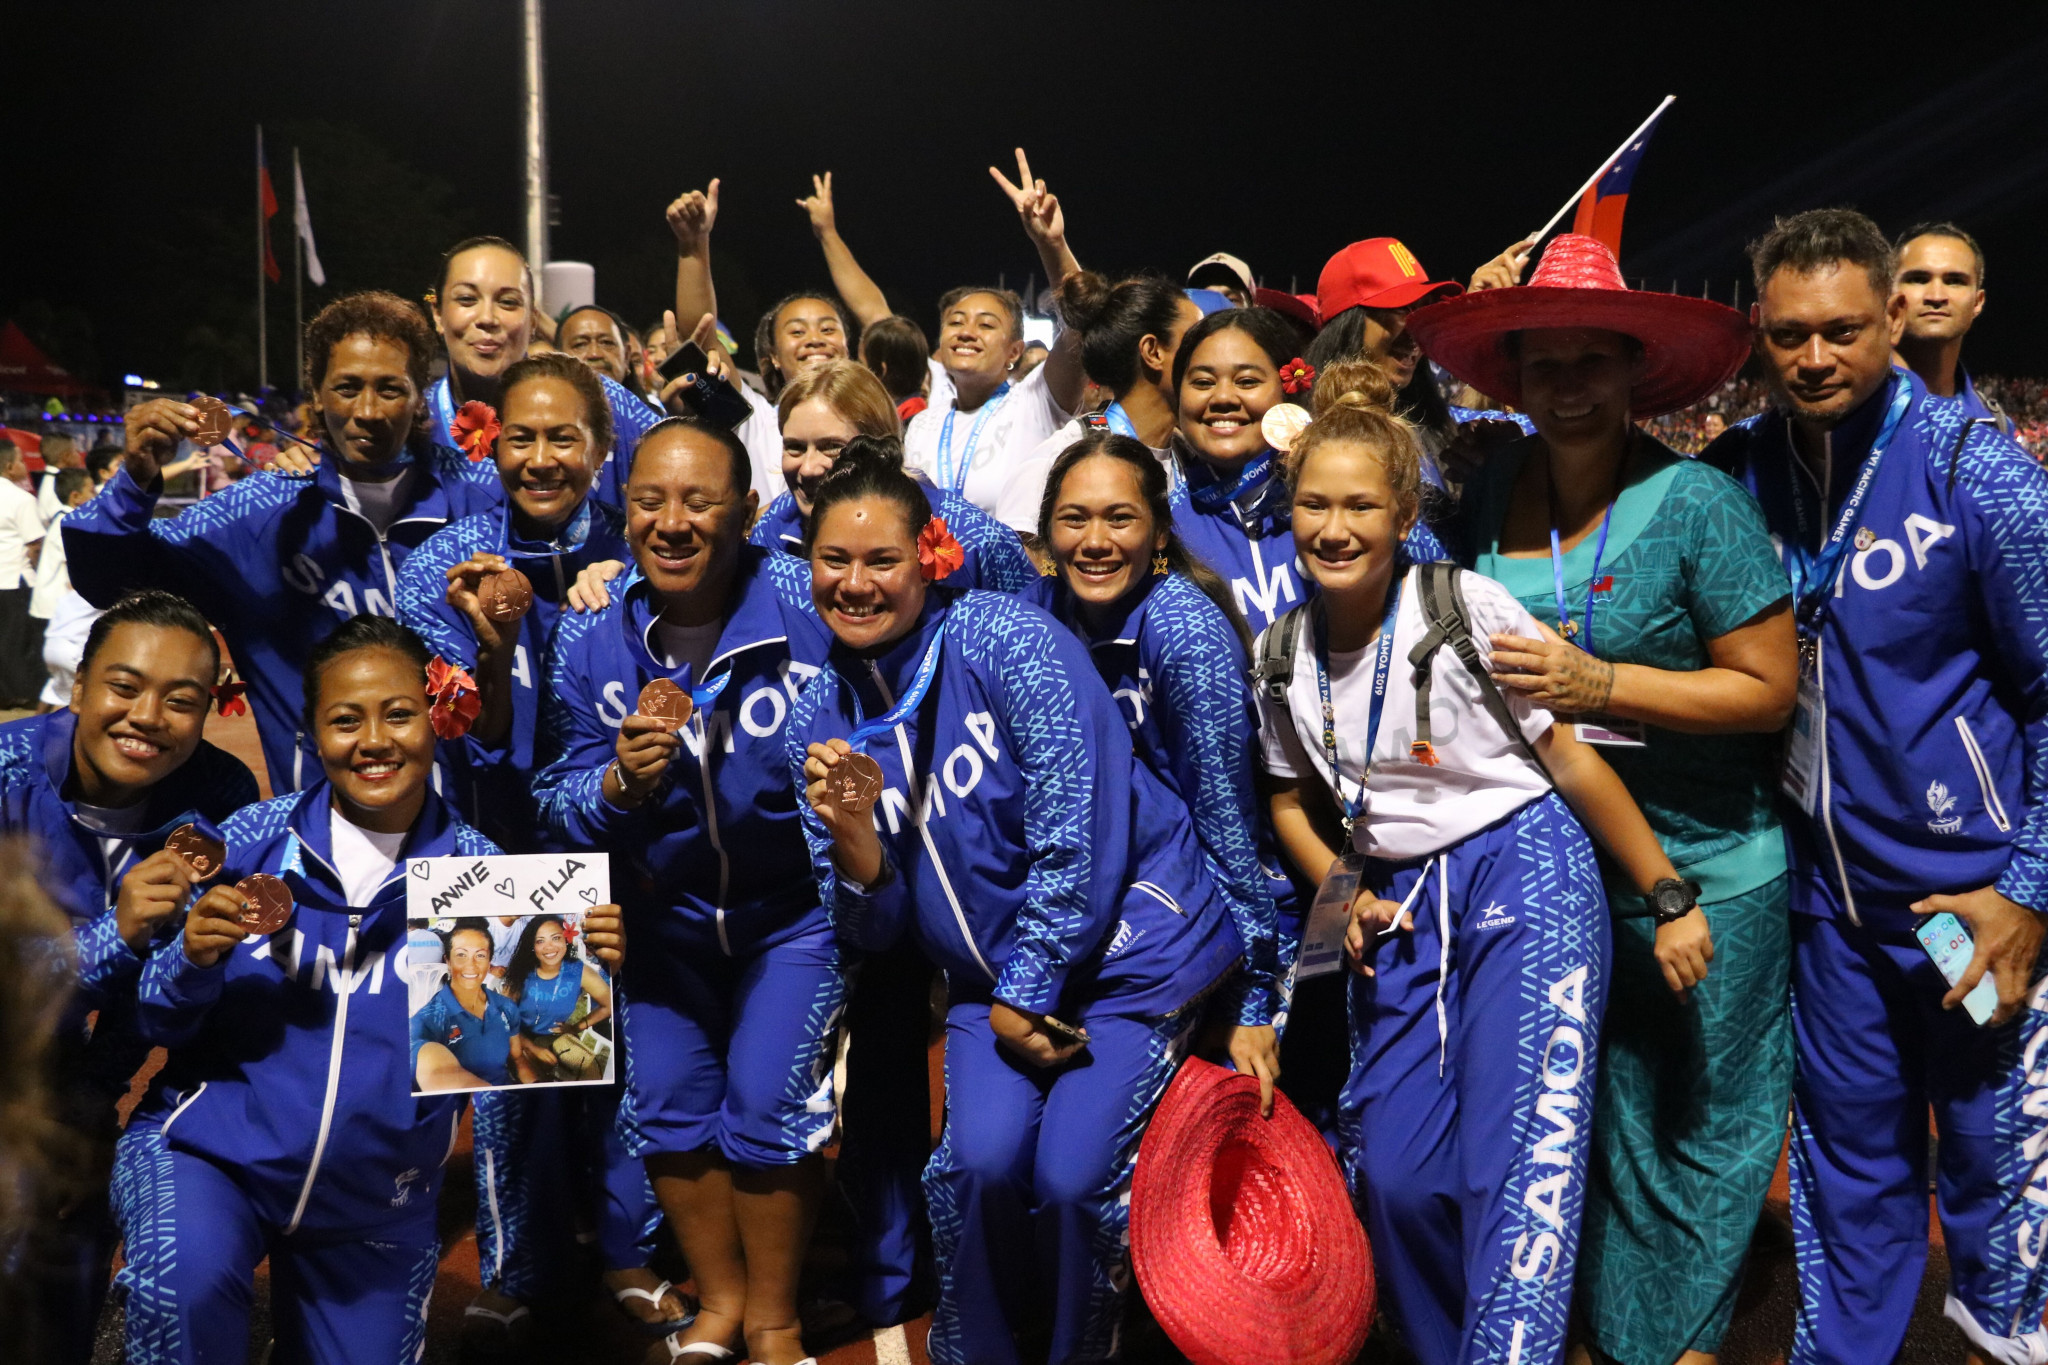 The 2019 Pacific Games has come to an end following the Closing Ceremony at Apia Park ©Games News Service